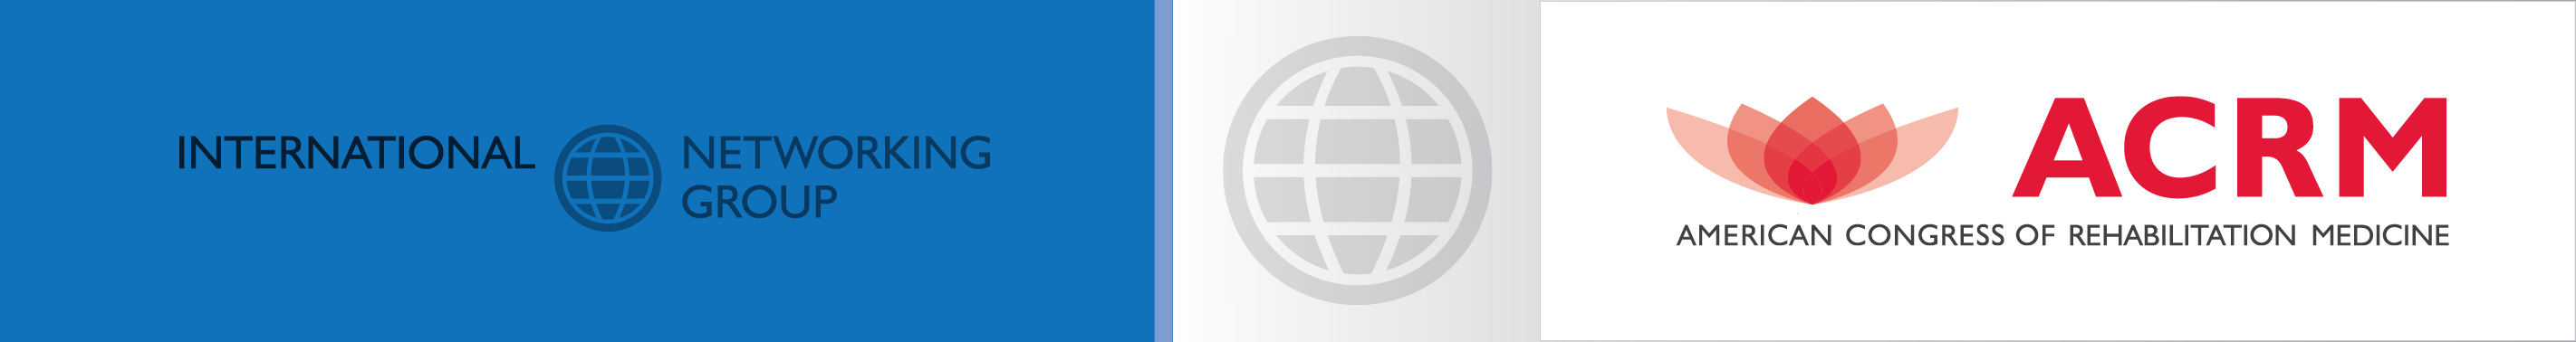 International Networking Group Header Main